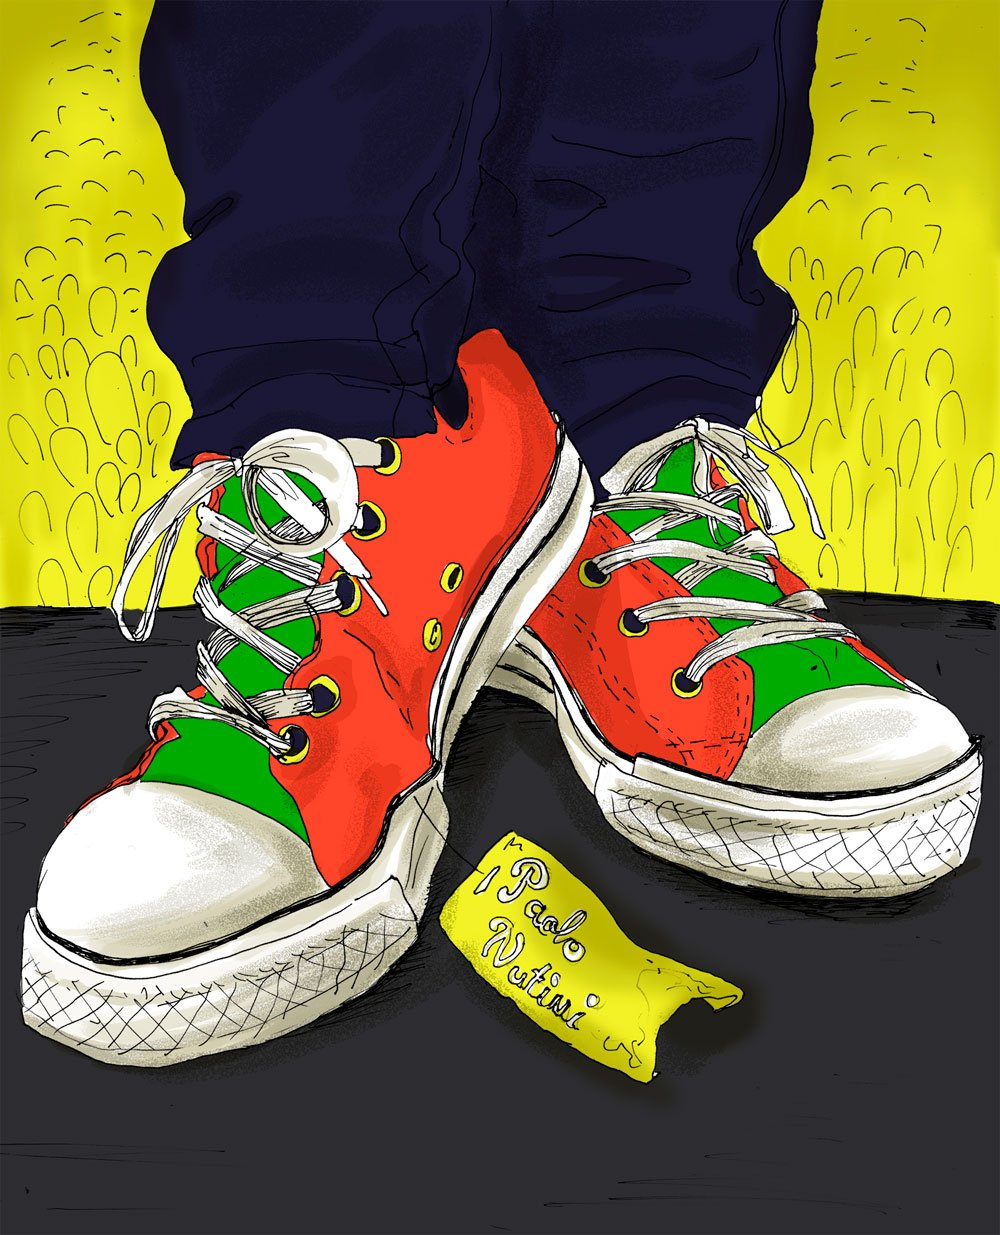 Paolo Nutini, new Shoes, sunny side up, helena grimes, illustration, artwork, fan art, design, electric picnic, EP 2014 - HeadStuff.org